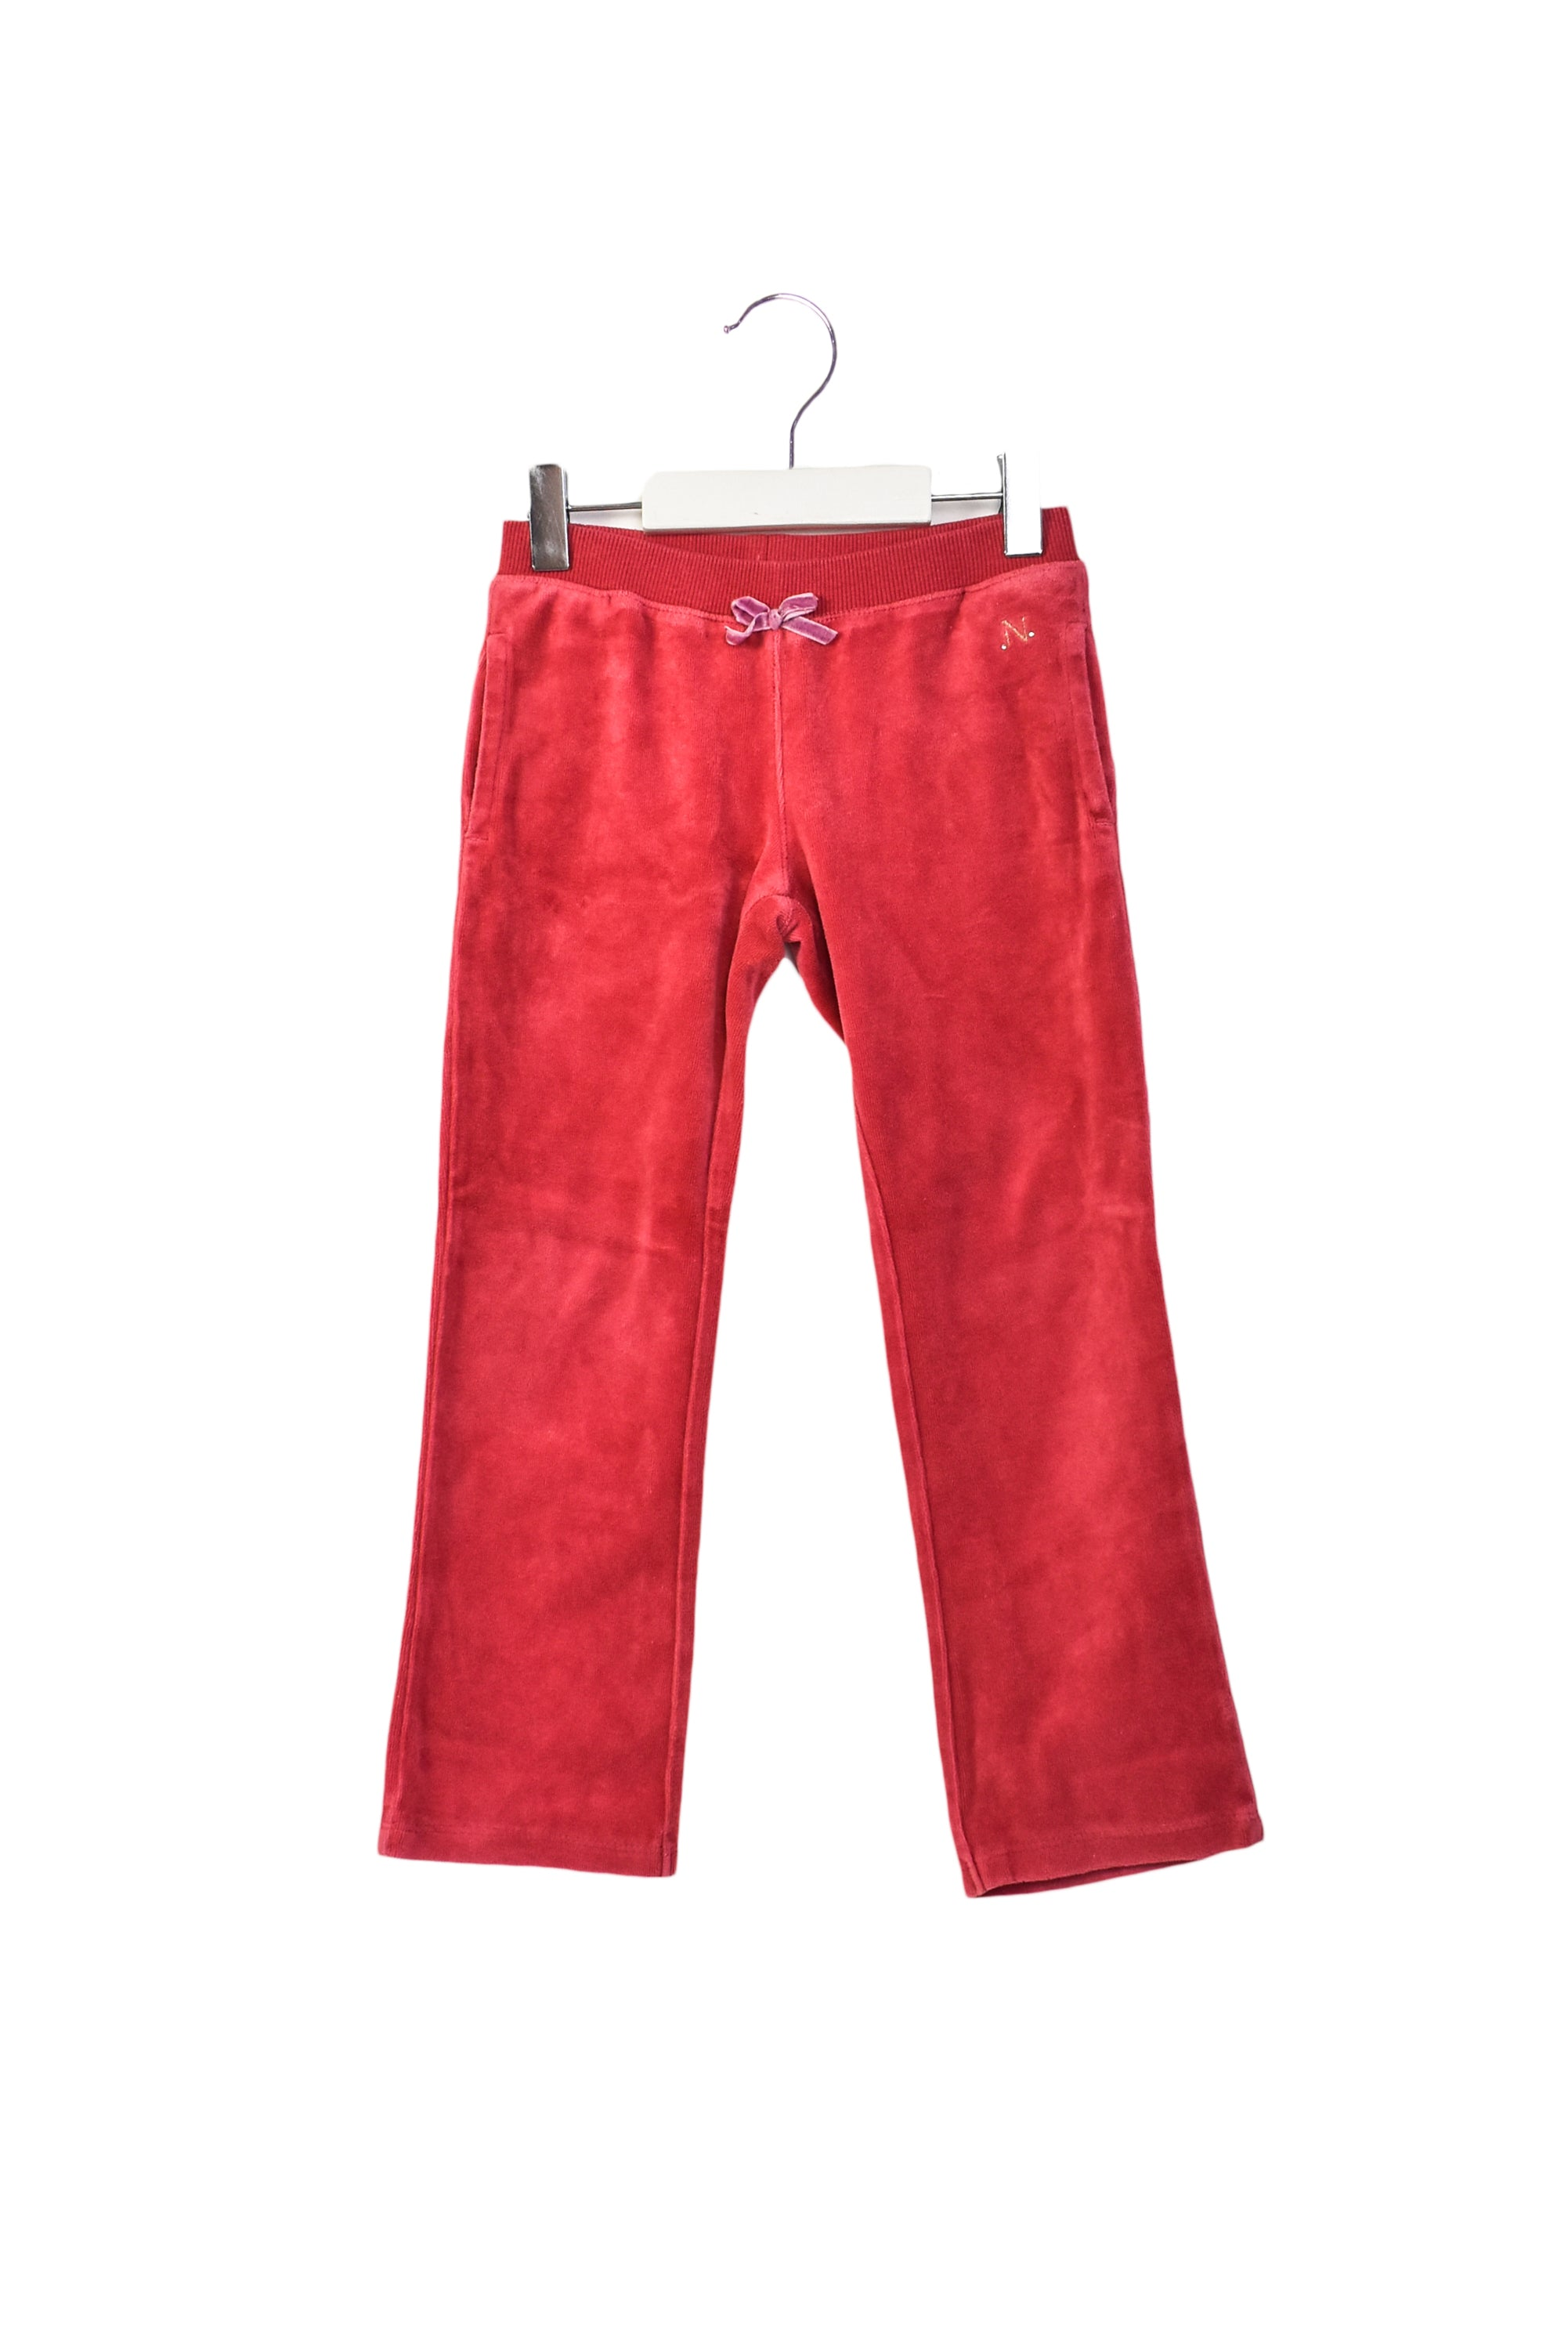 10013668 Naf Naf Enfant Kids ~ Pants 4T at Retykle